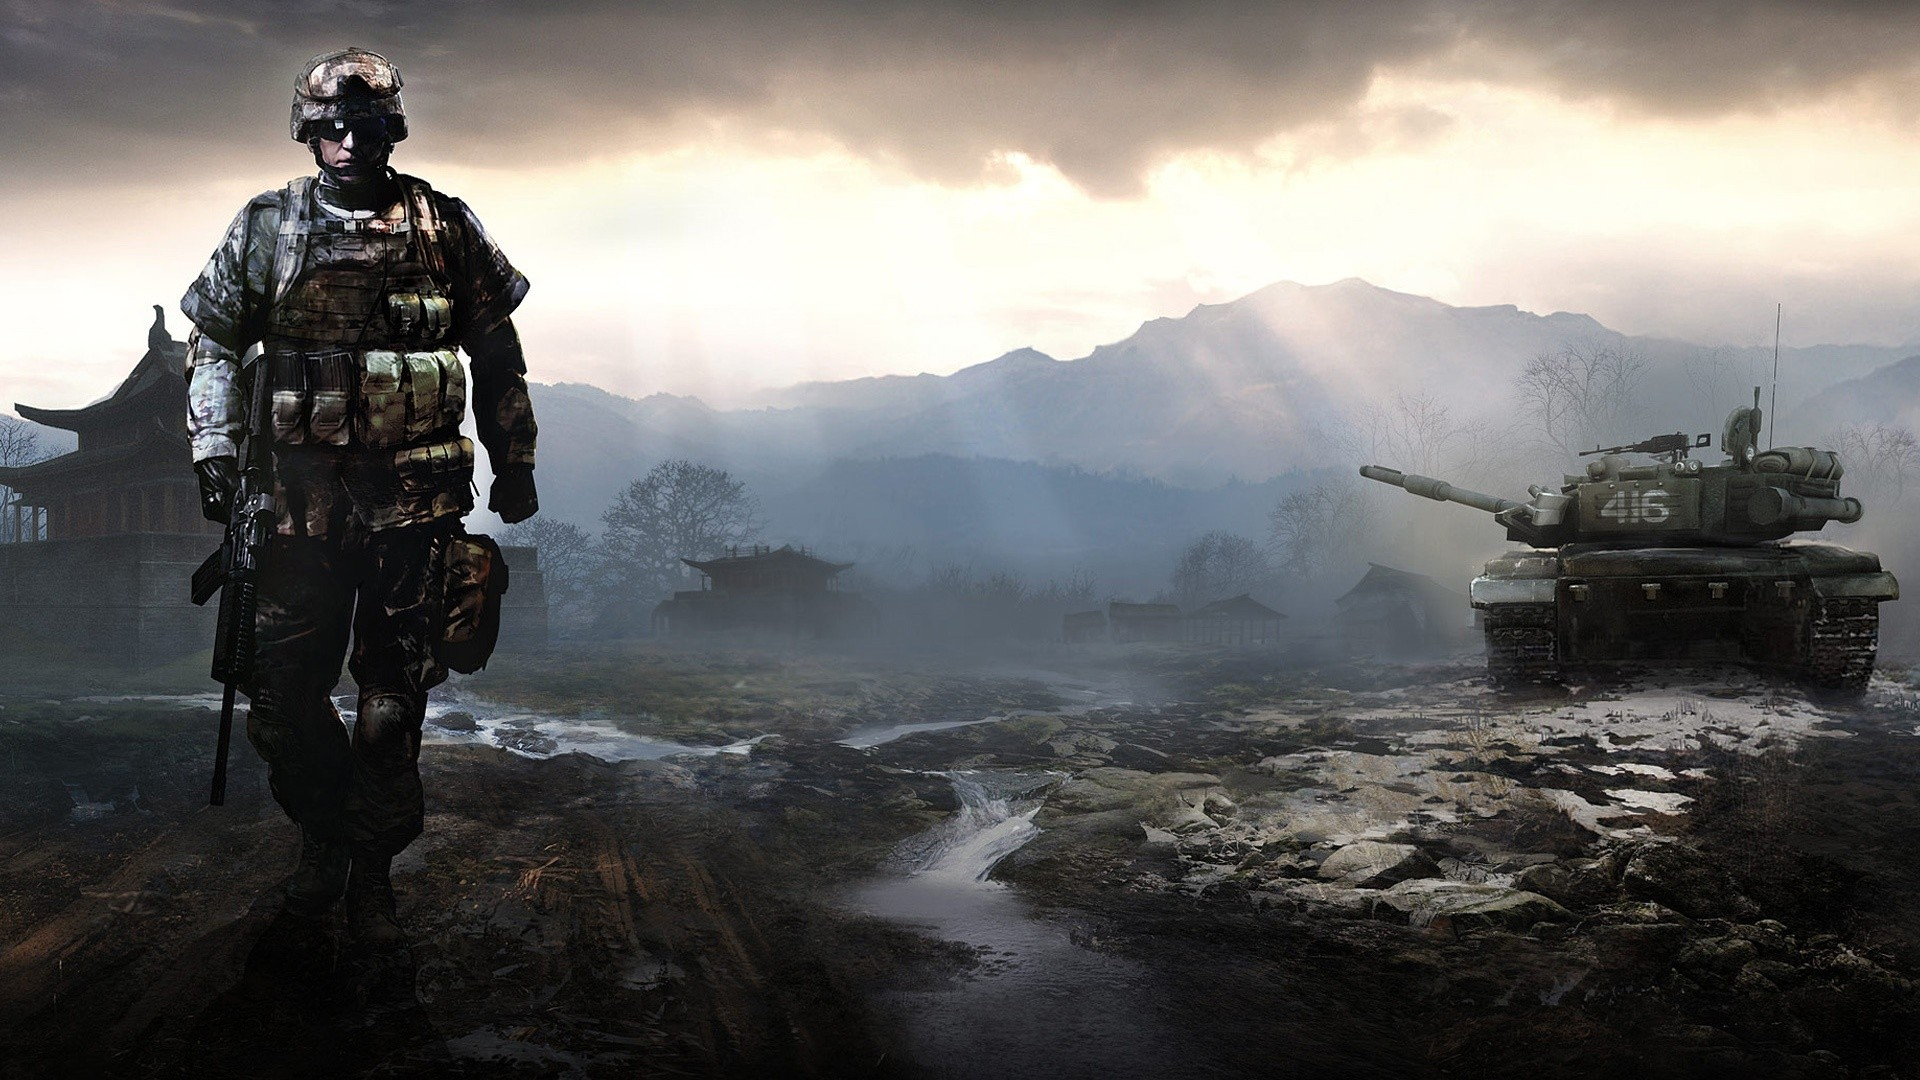 1920x1080 Real Battlefield Background Download Free